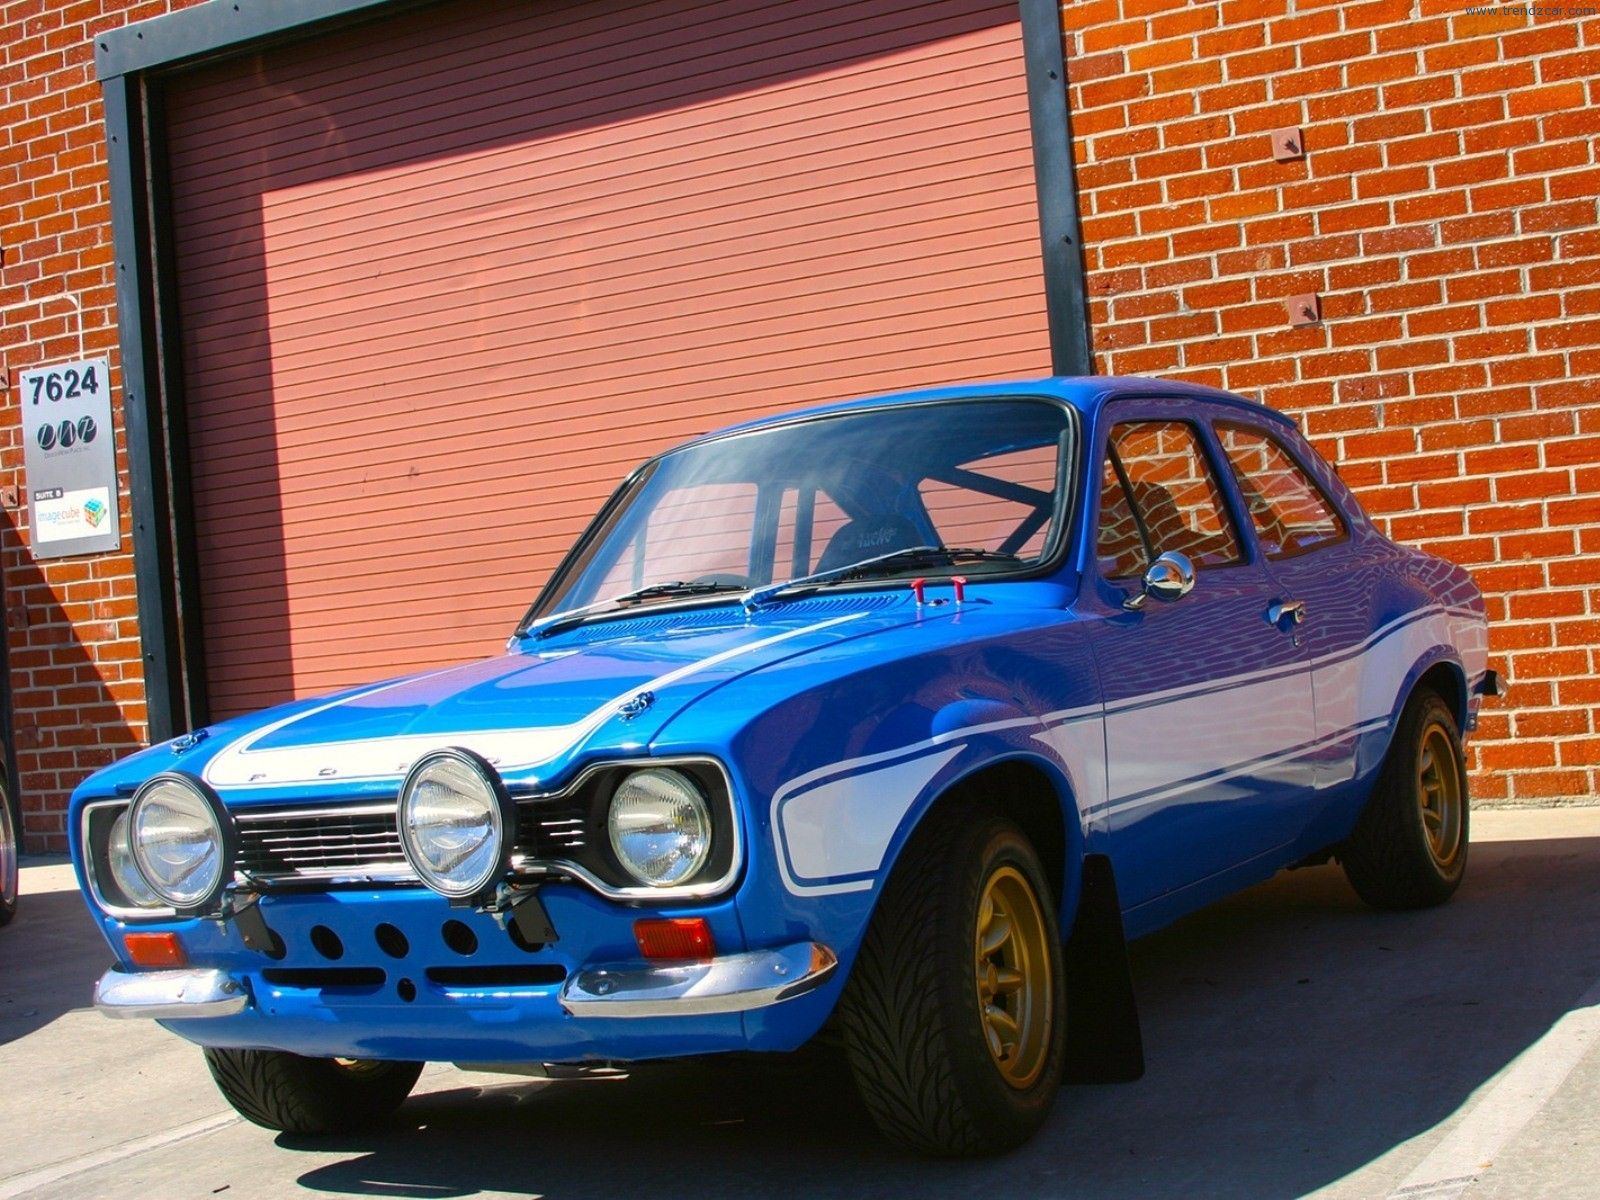 1970 ford escort rs2000 front angle fast furious 6 car - Fast And Furious 6 Cars Wallpapers